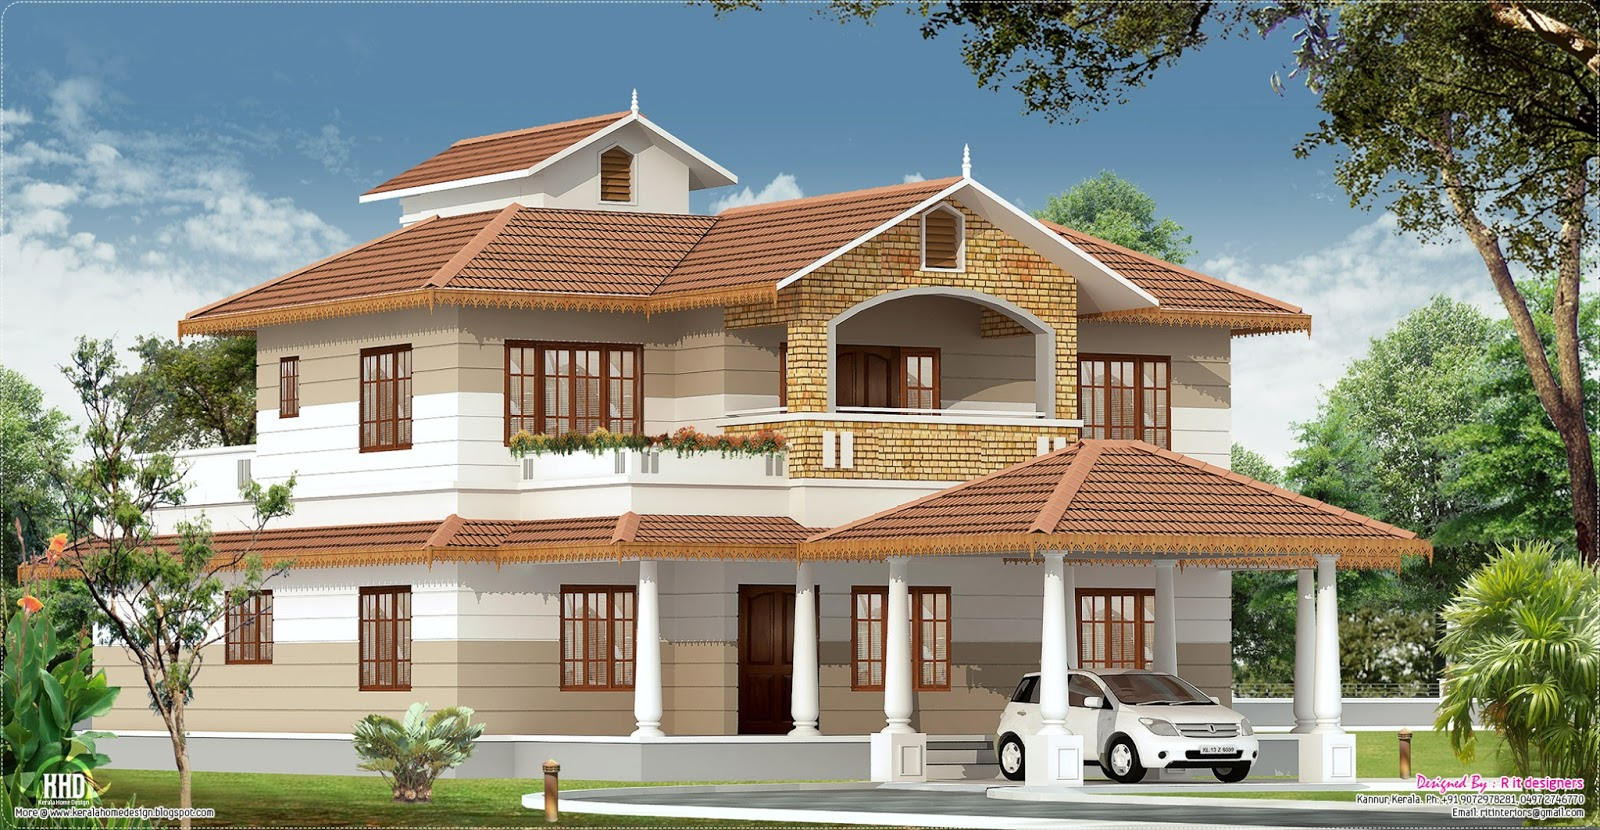 2700 kerala home with interior designs kerala for Kerala house interior arch design